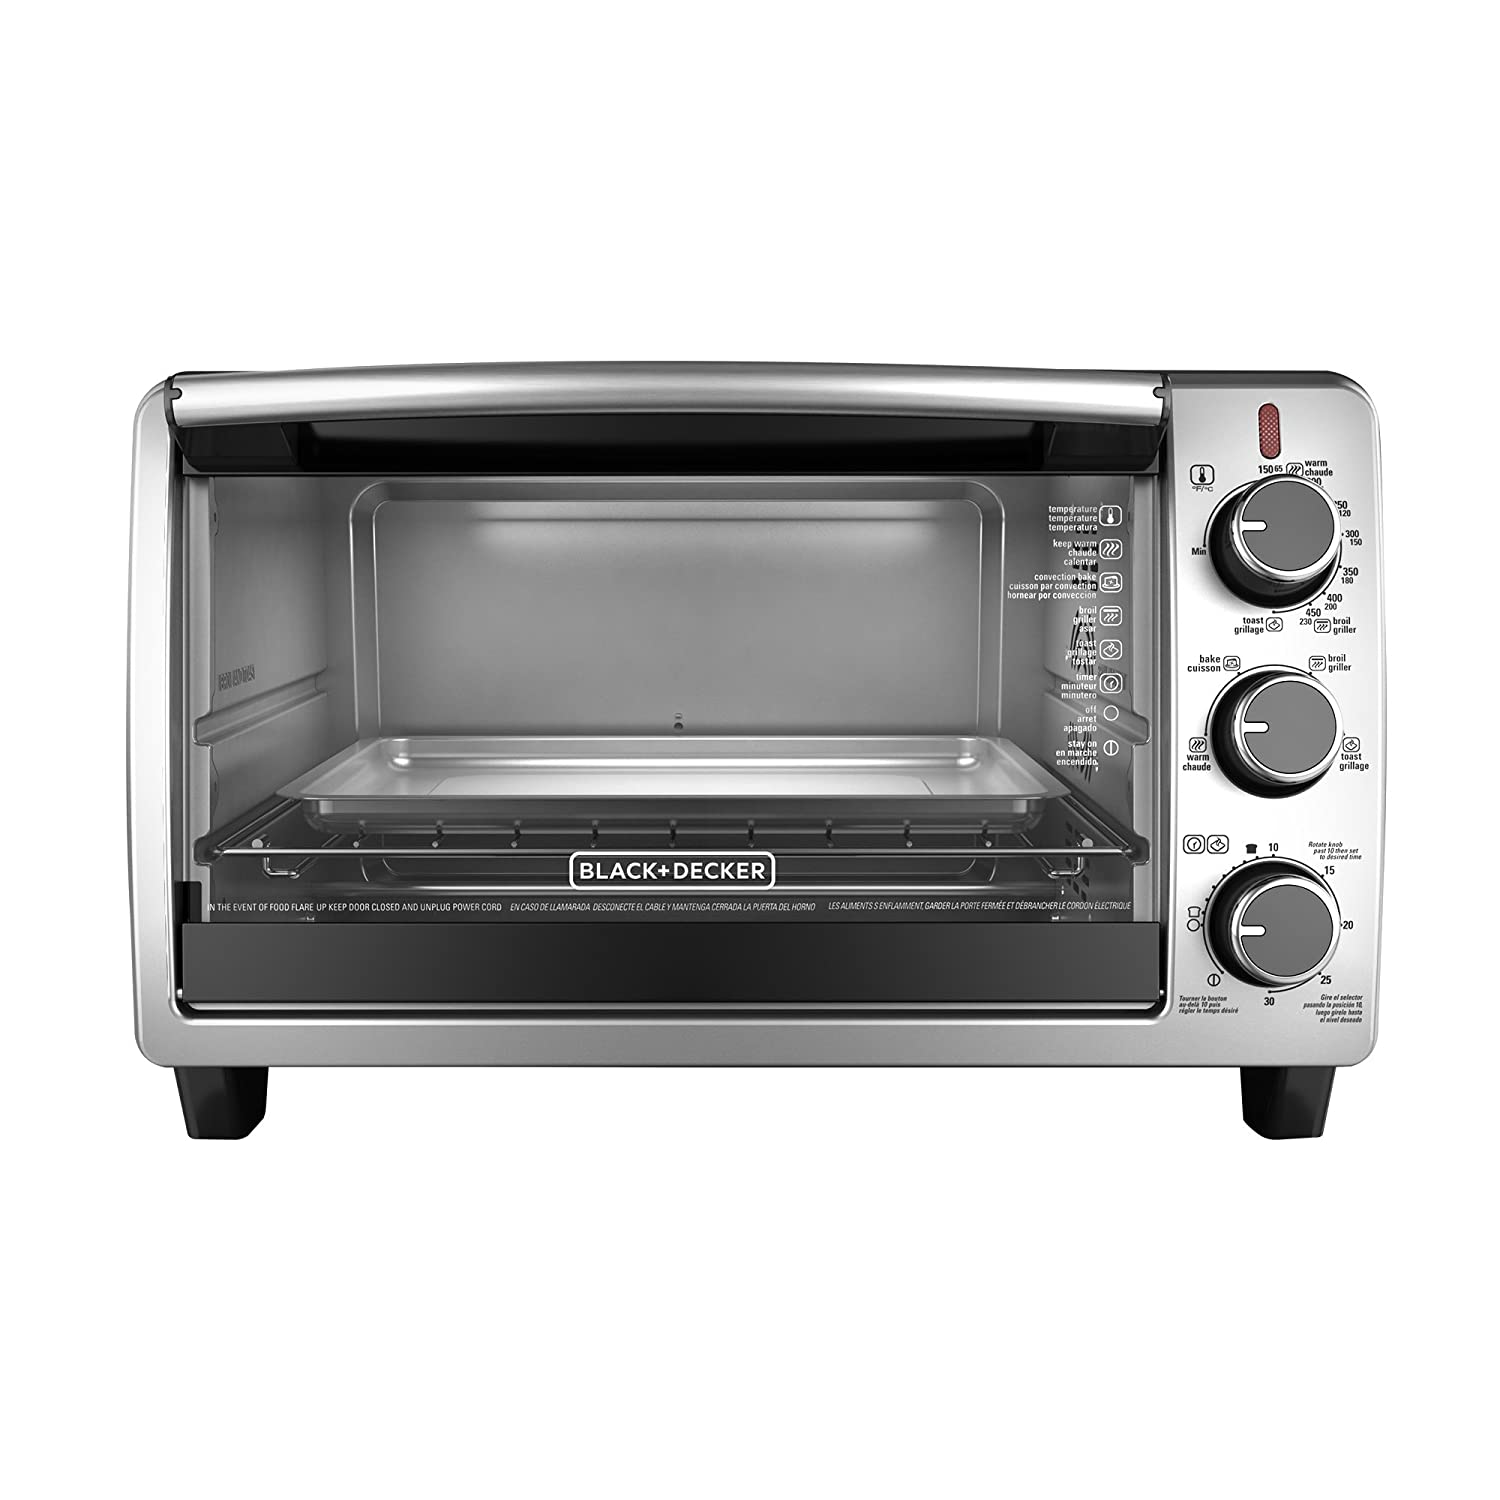 amazoncom blackdecker tosbd slice convection countertop  - amazoncom blackdecker tosbd slice convection countertop toasteroven includes bake pan broil rack  toasting rack stainless steelblack